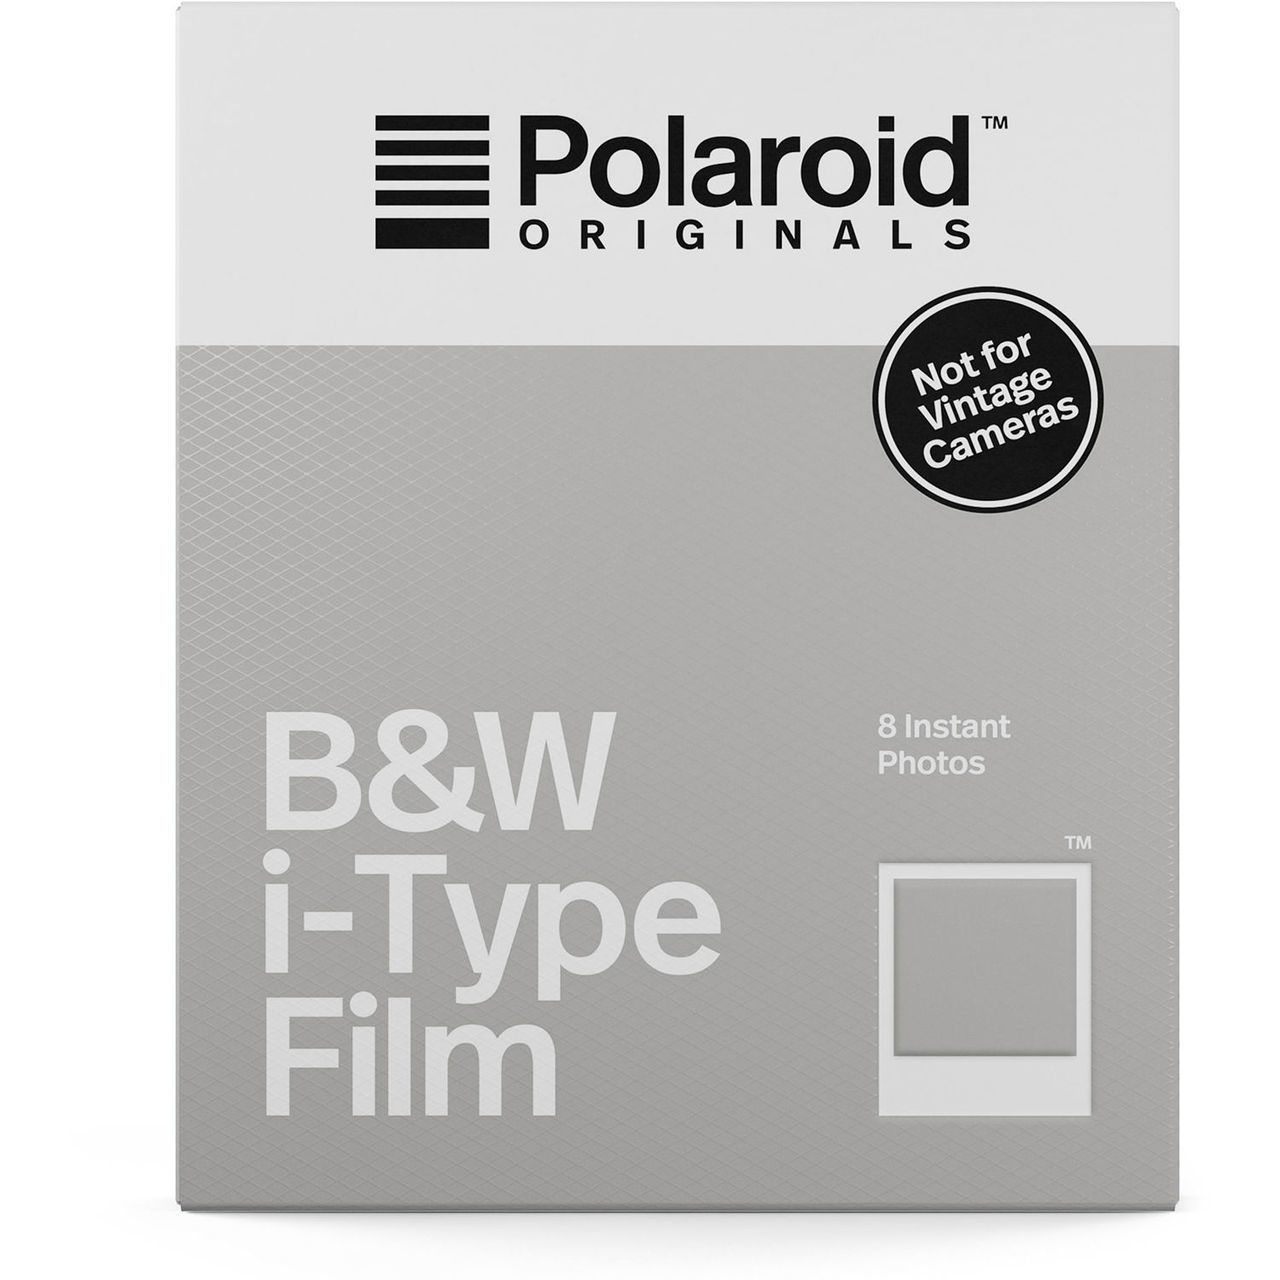 Polaroid Black & White Film for i-Type Accessories Polaroid